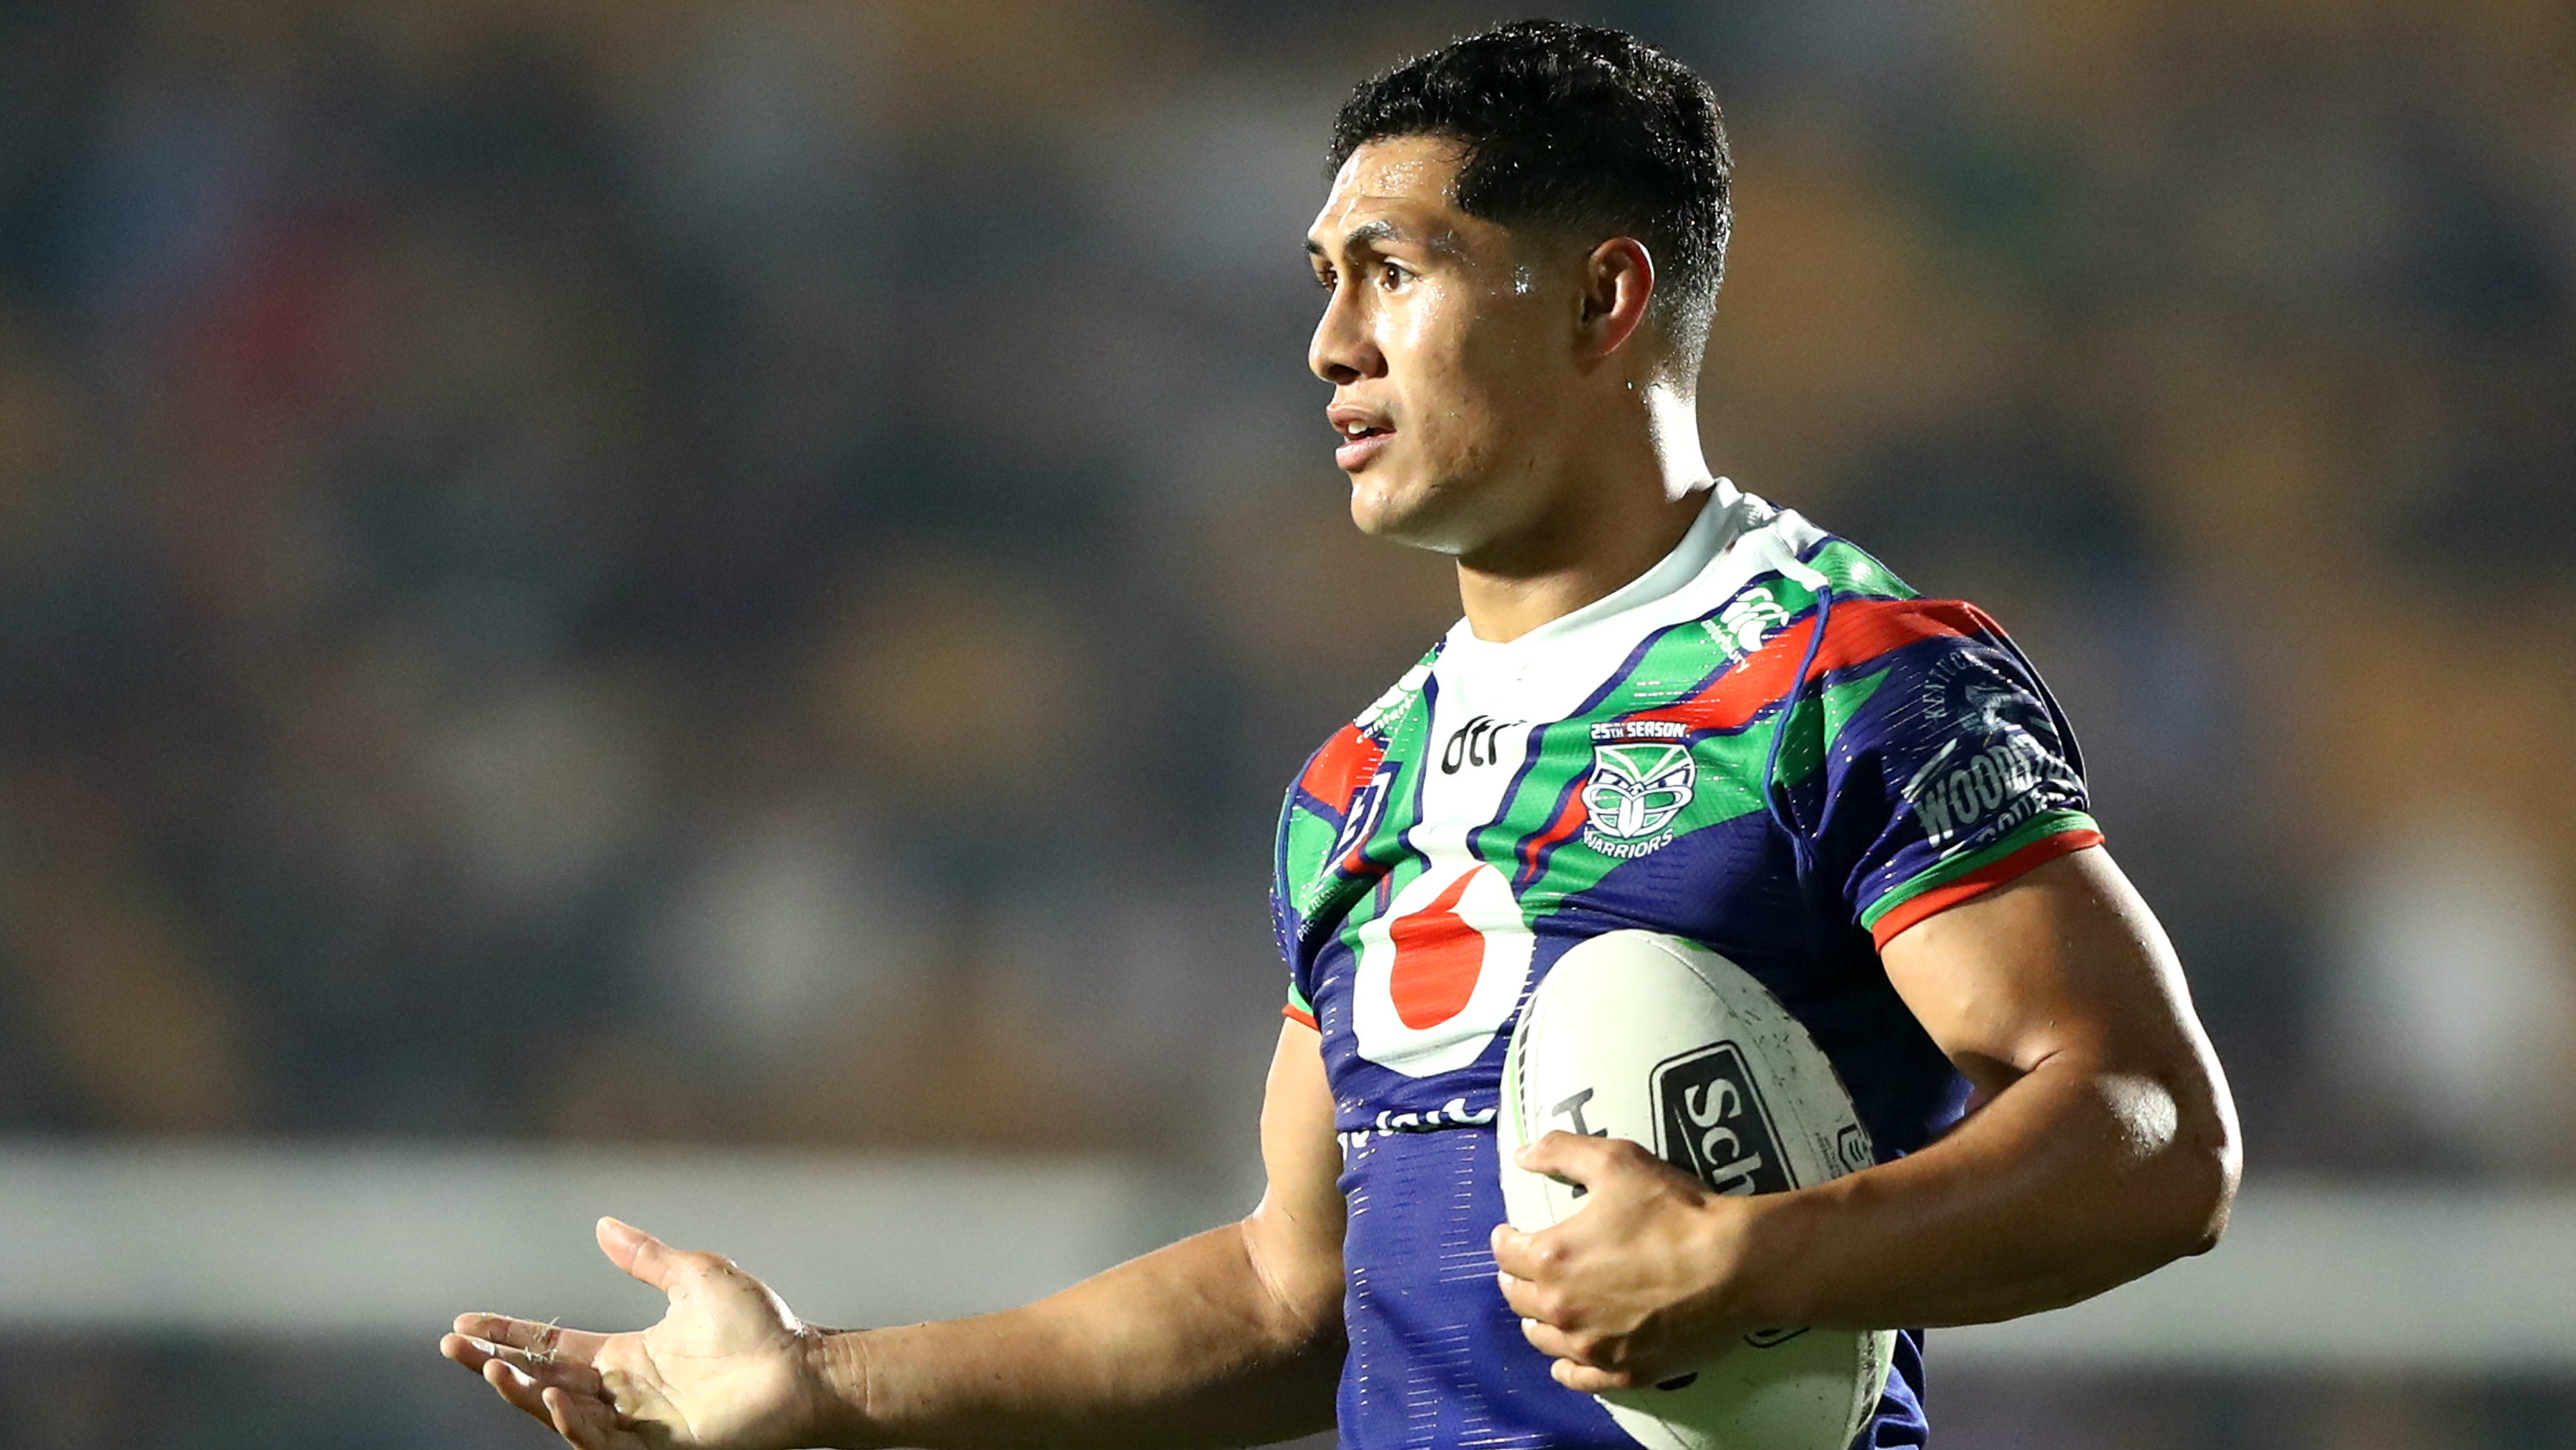 Roger Tuivasa-Sheck injury: Warriors captain ruled out of Anzac Day clash